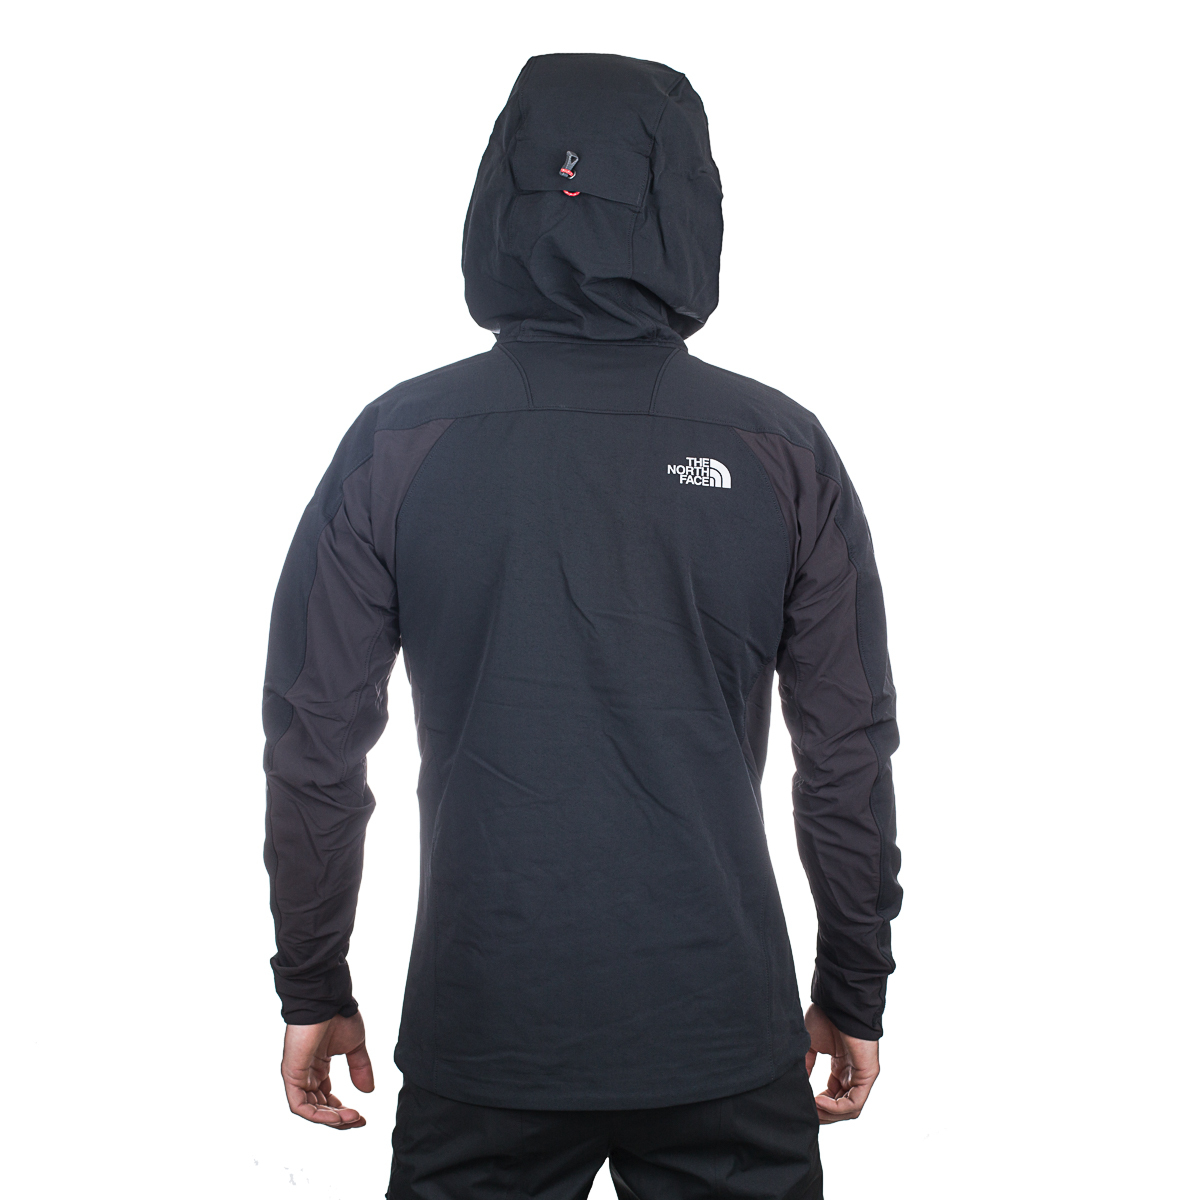 432b9fa43 Purgatory Hooded Jacket 2015